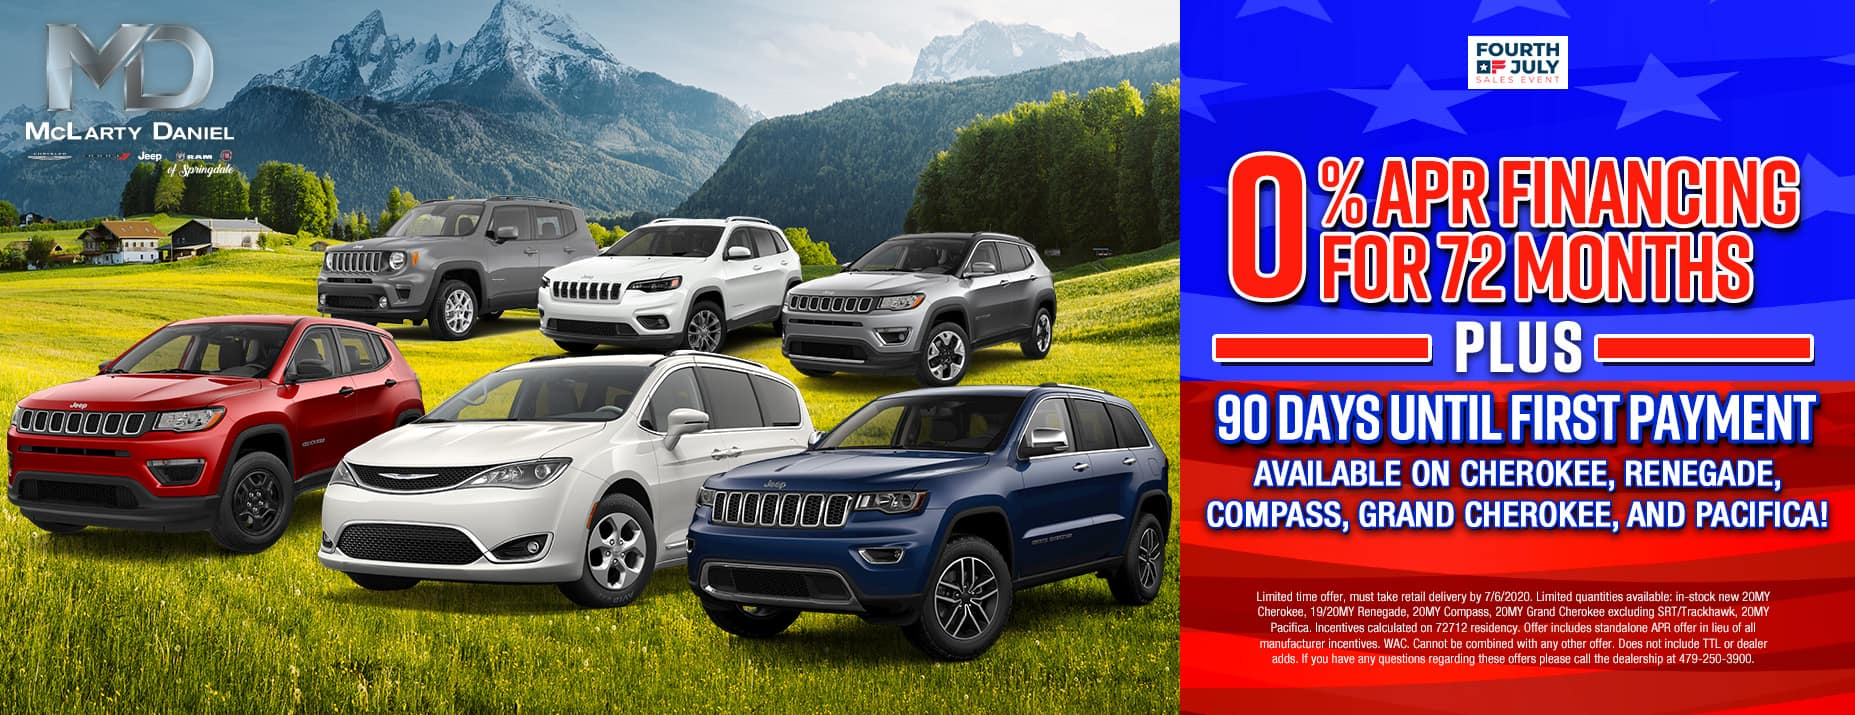 0% APR for 72 months and NO PAYMENTS FOR 90 DAYS available on Cherokee, Renegade, Compass, Grand Cherokee, and Pacifica!